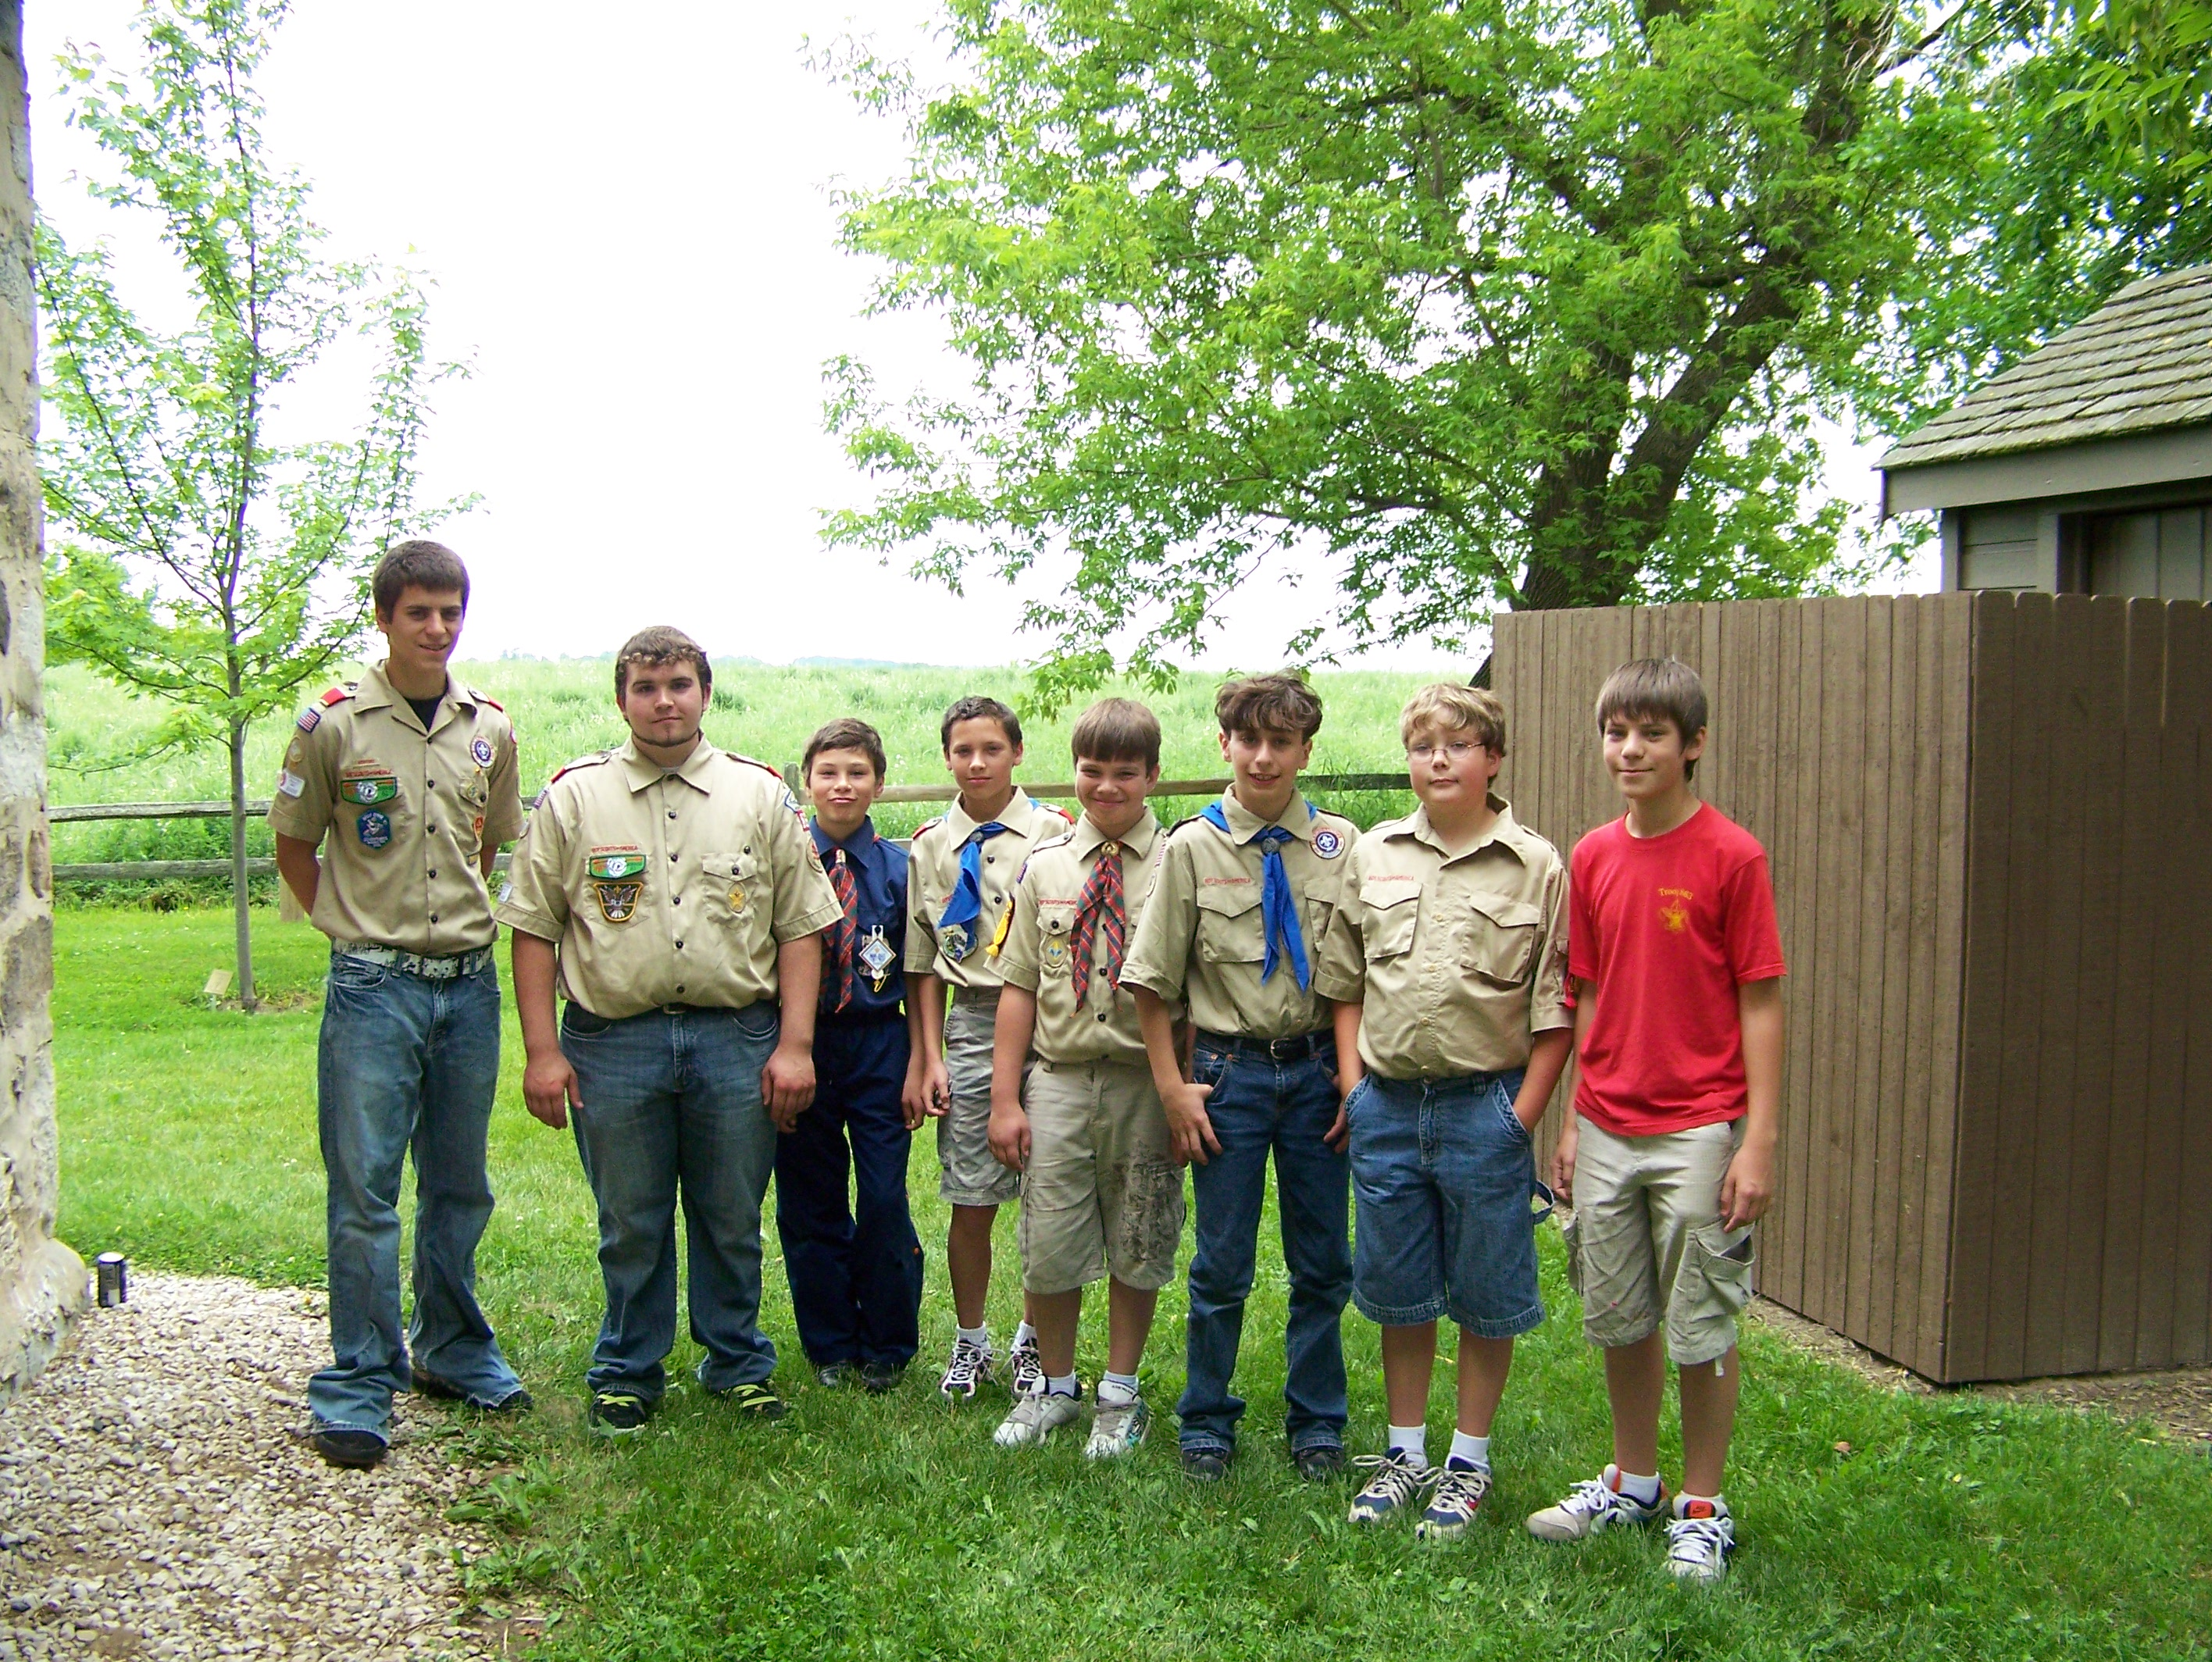 A Mix of Boy and Cub Scouts of All Ranks